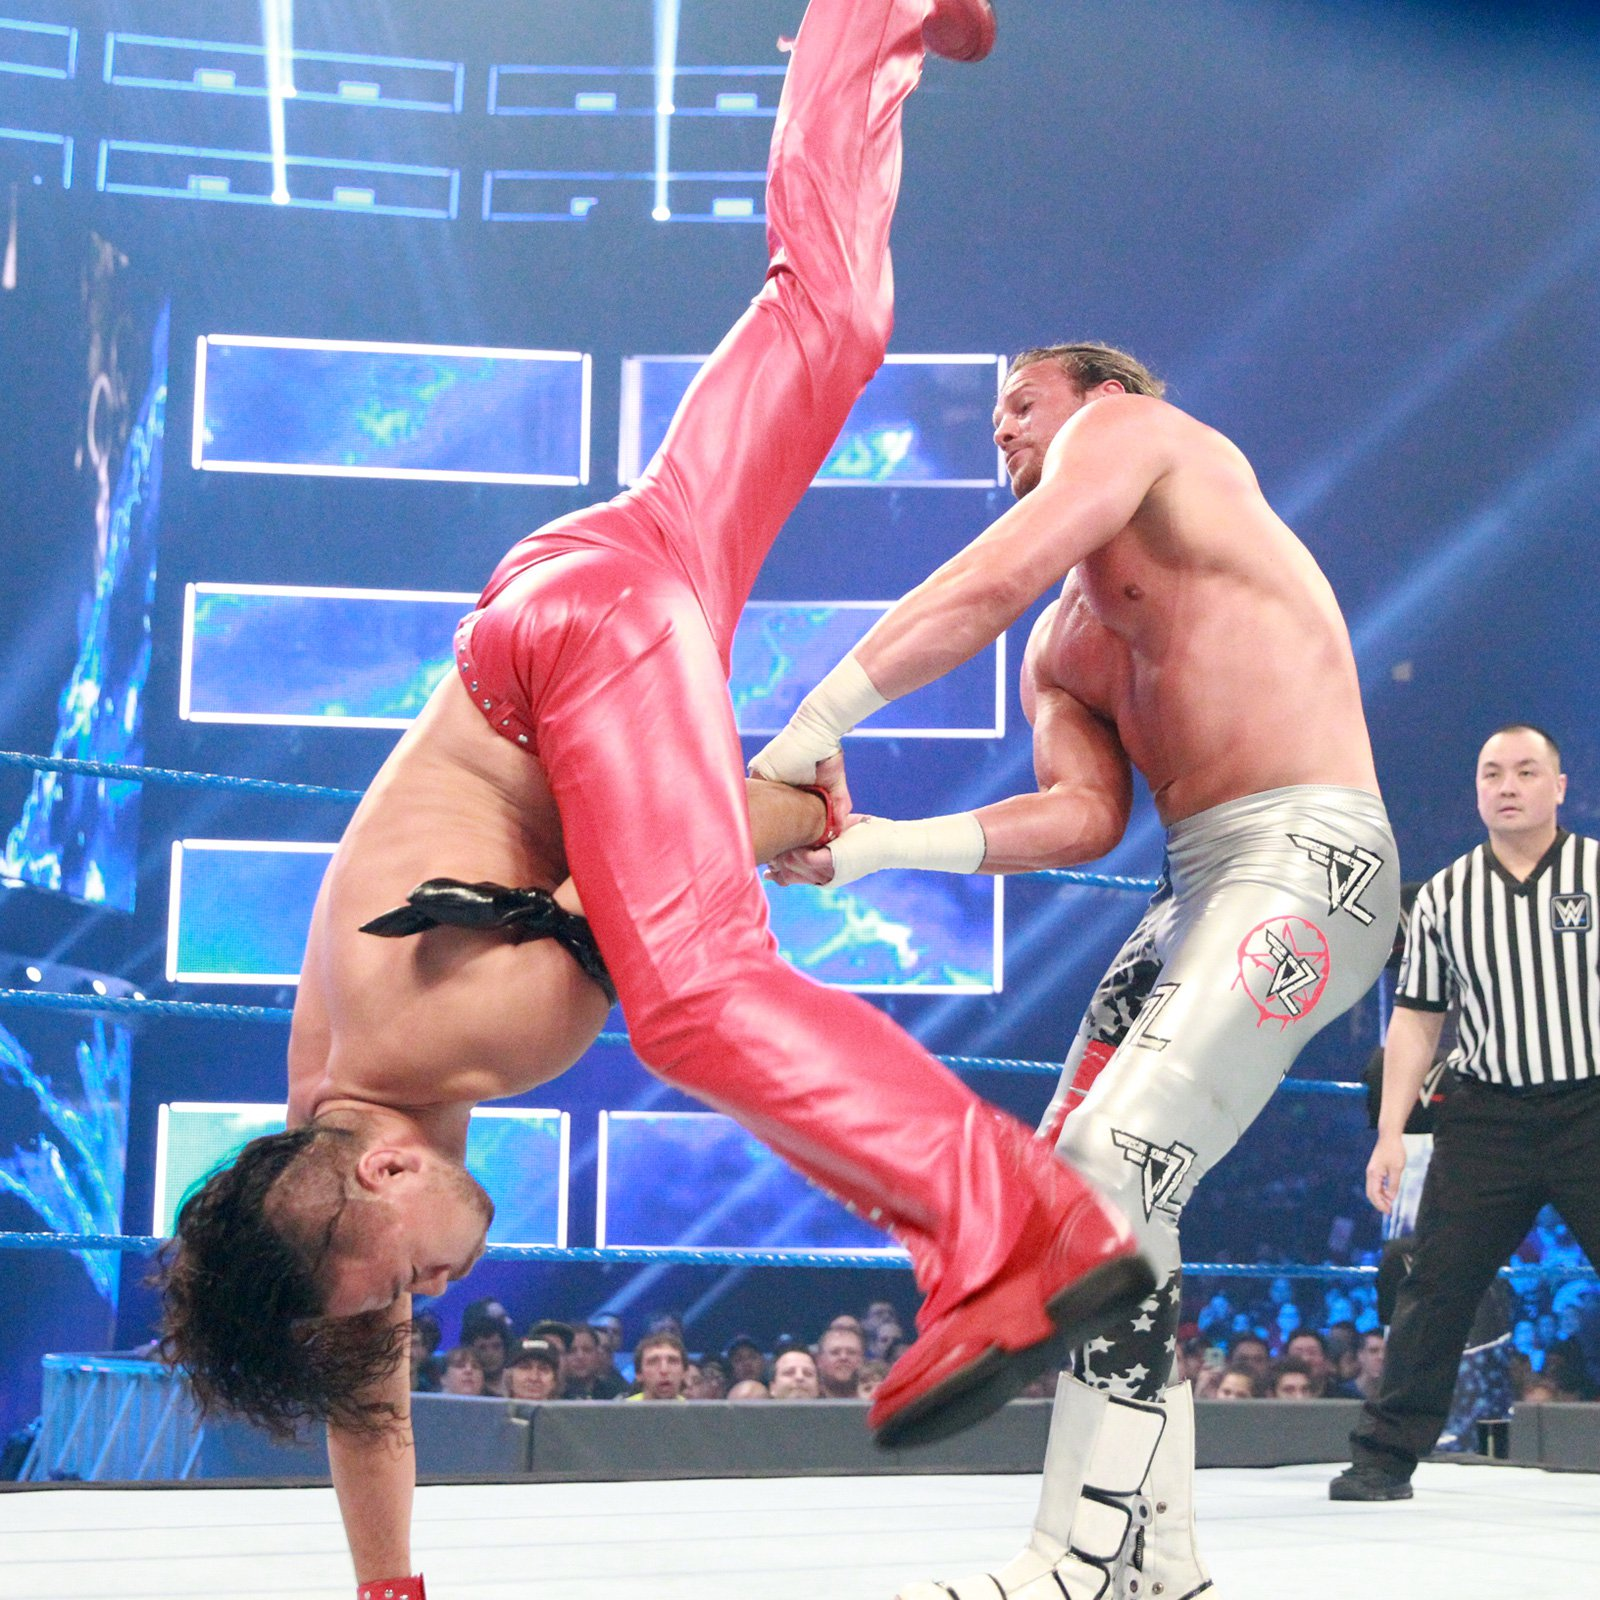 The King of Strong Style displays an impressive counter to break his opponent's hold.